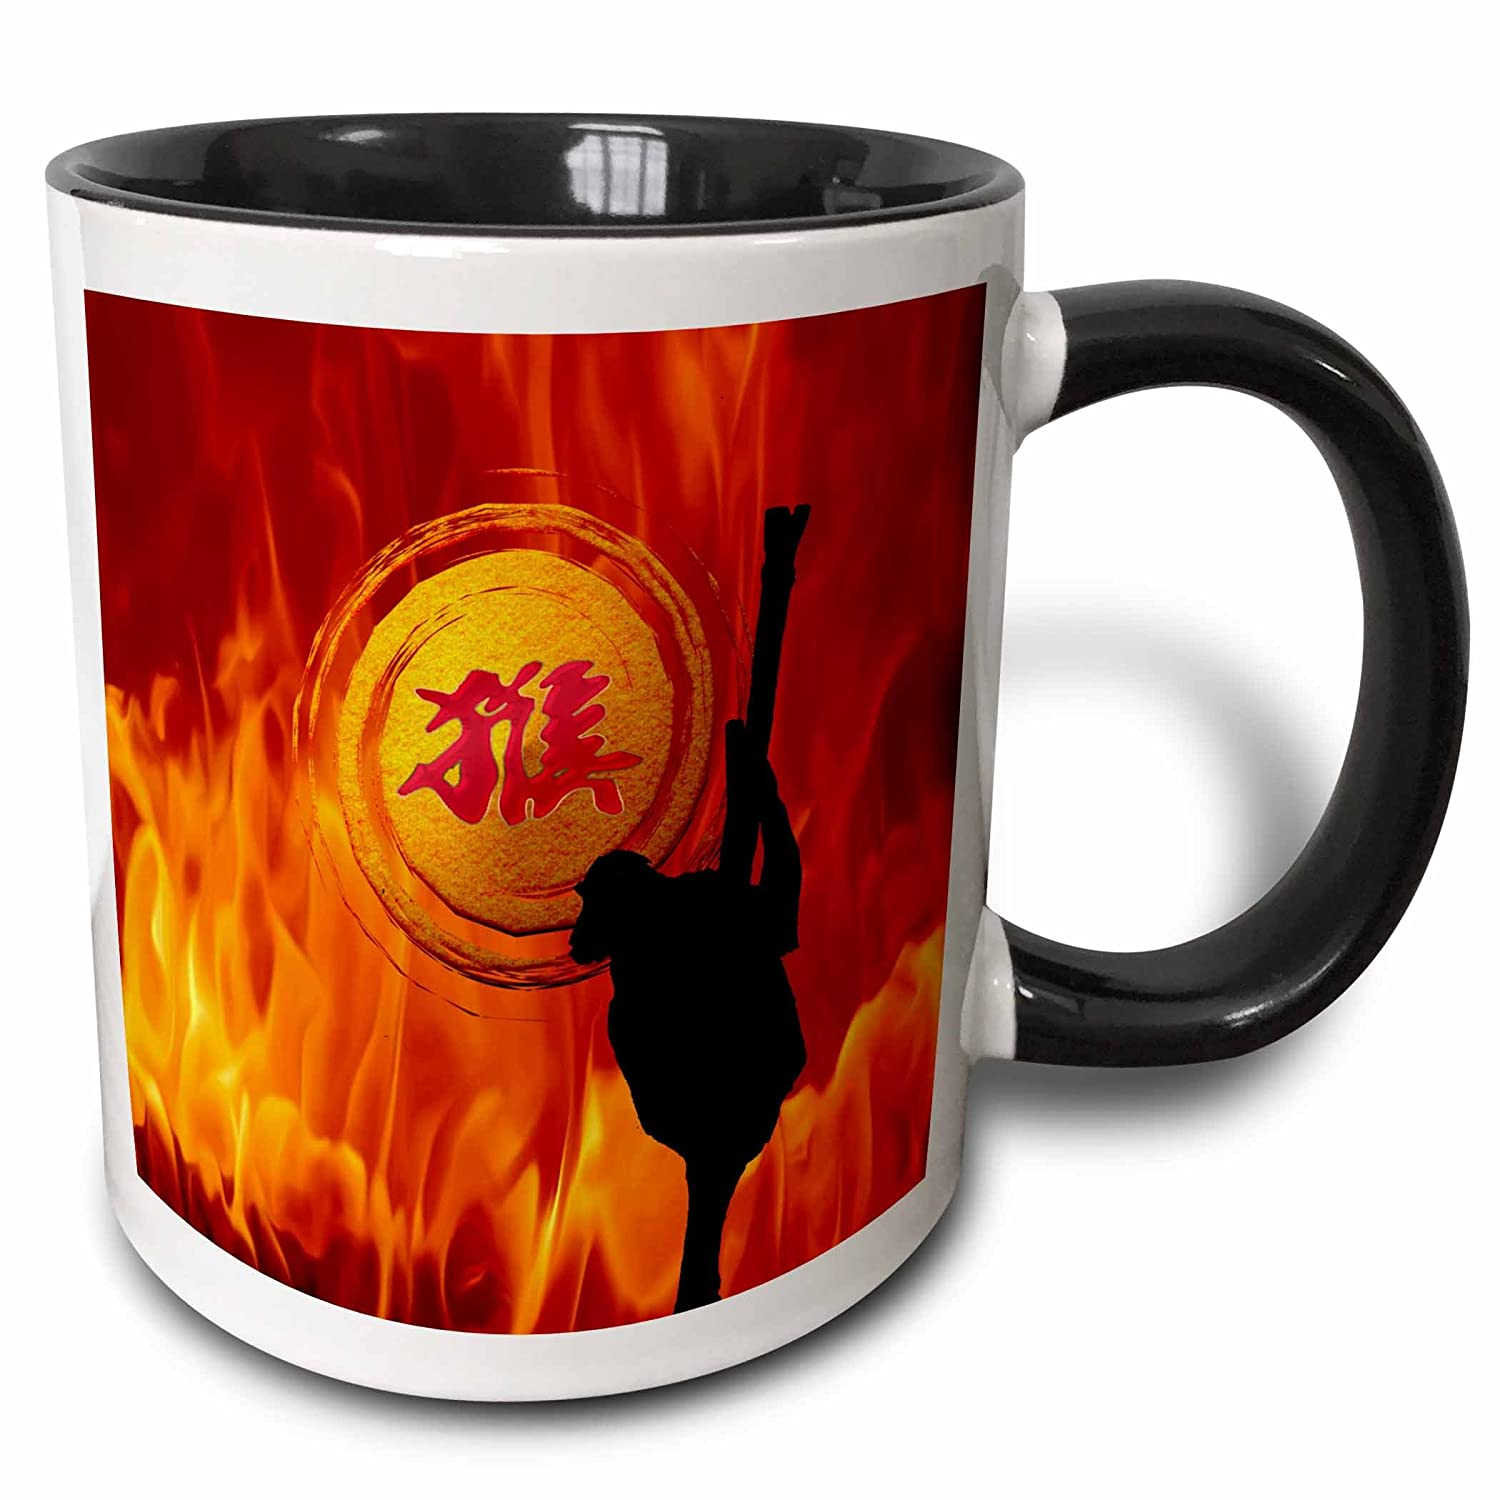 Buy 3drose Monkey On Tree Branch Sign Of The Monkey Fire Background Mug Black 11 Oz Online At Low Prices In India Amazon In